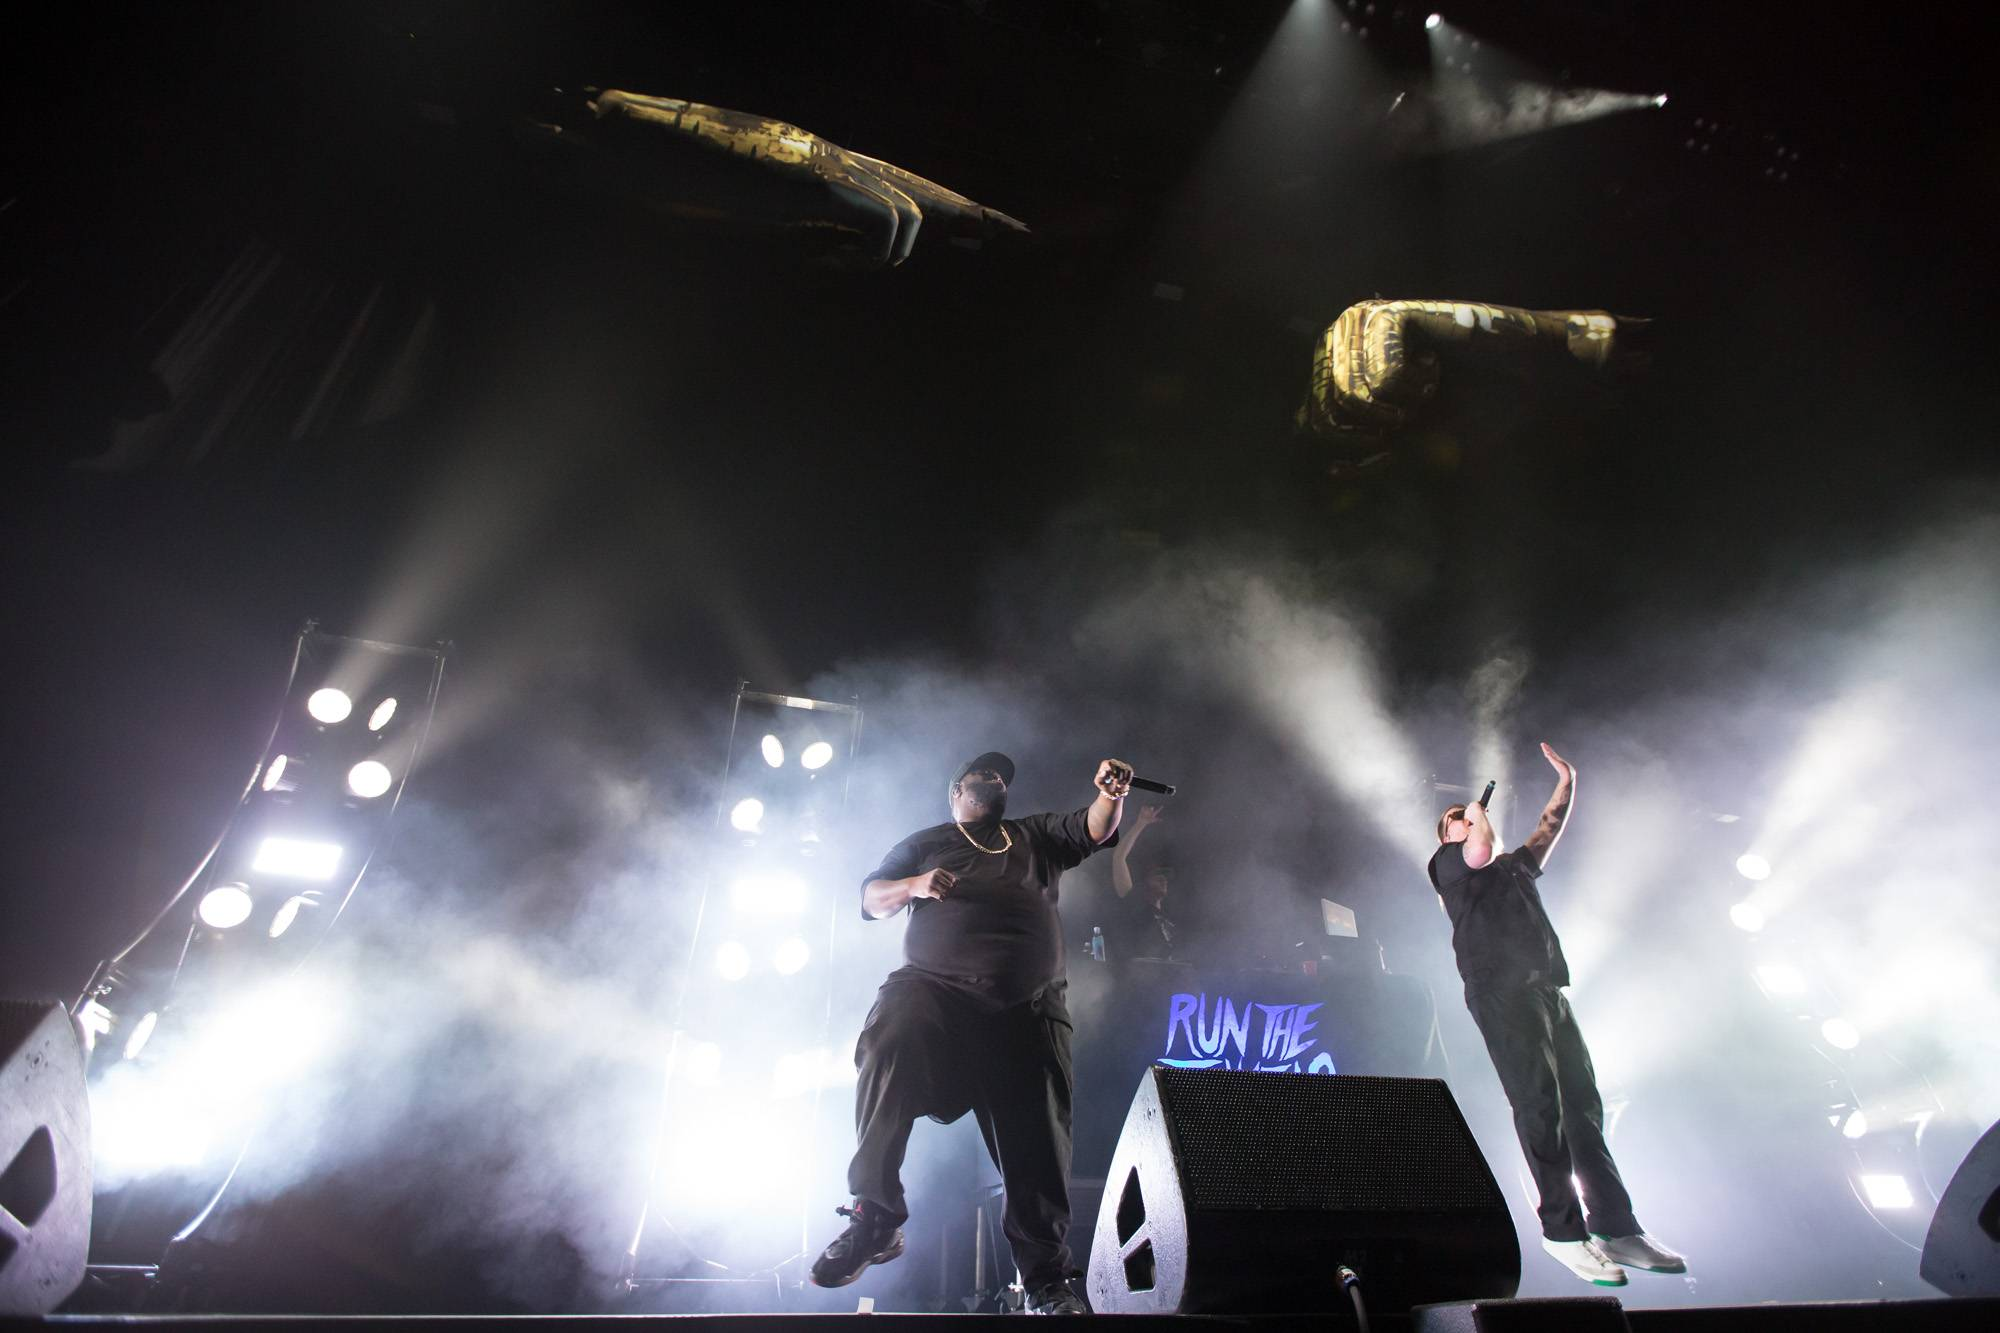 Run The Jewels at Rogers Arena, Vancouver, Mar 8 2018. Kirk Chantraine photo.